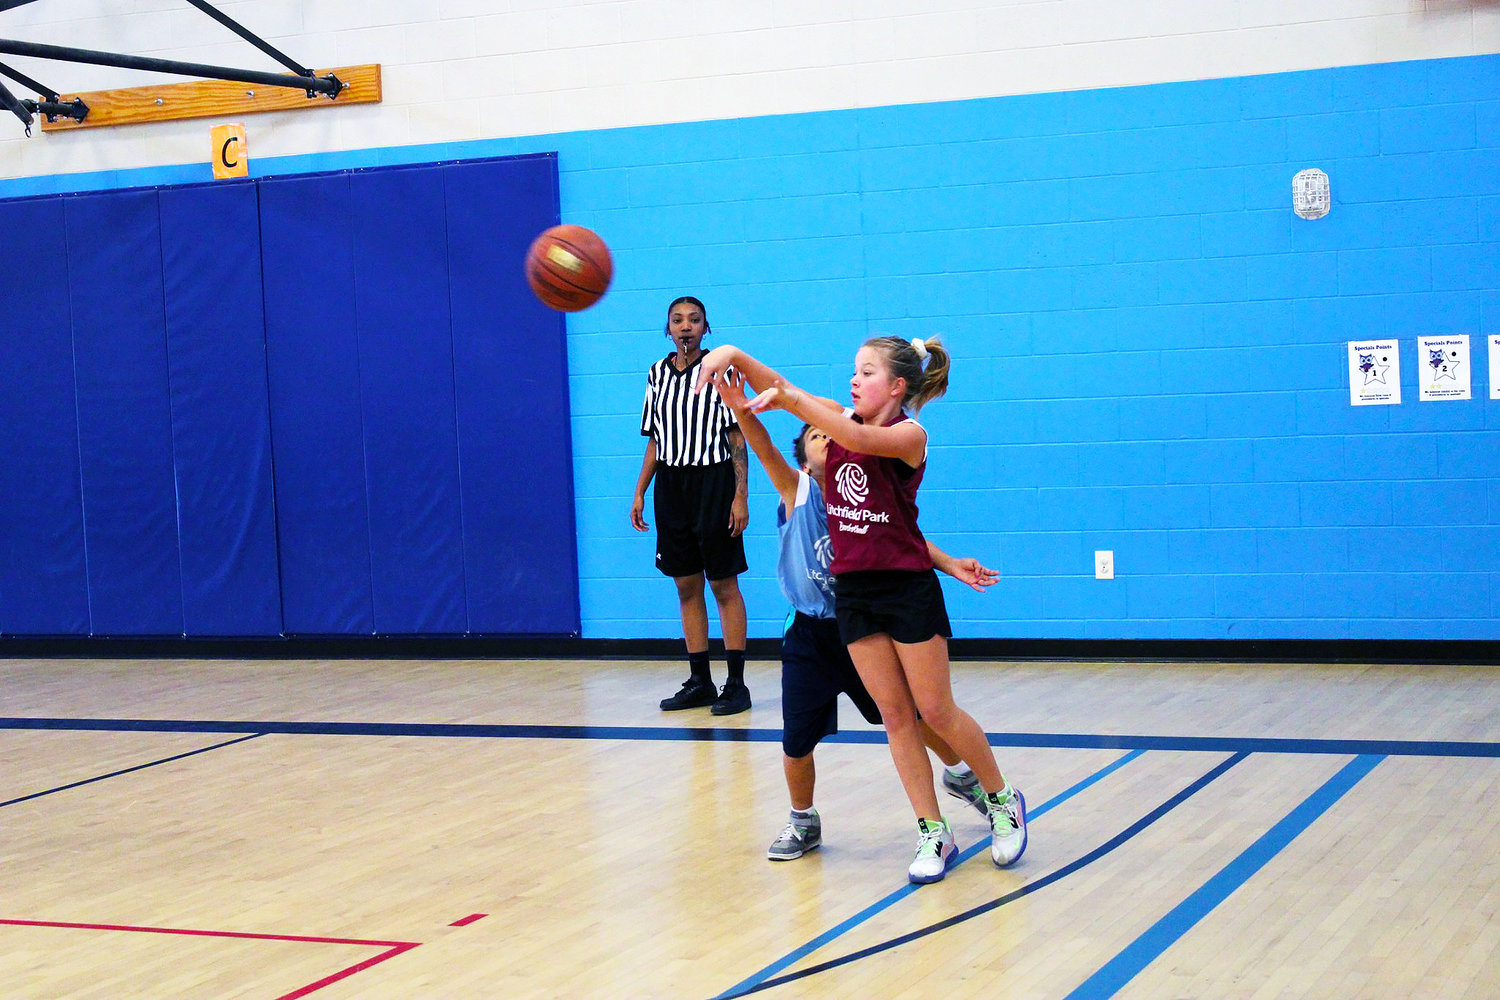 More than 300 children are participating in Litchfield Park youth basketball this season. Youth sports are among the programs funded through the city's general fund, which receives shared state revenue allocations based on population.